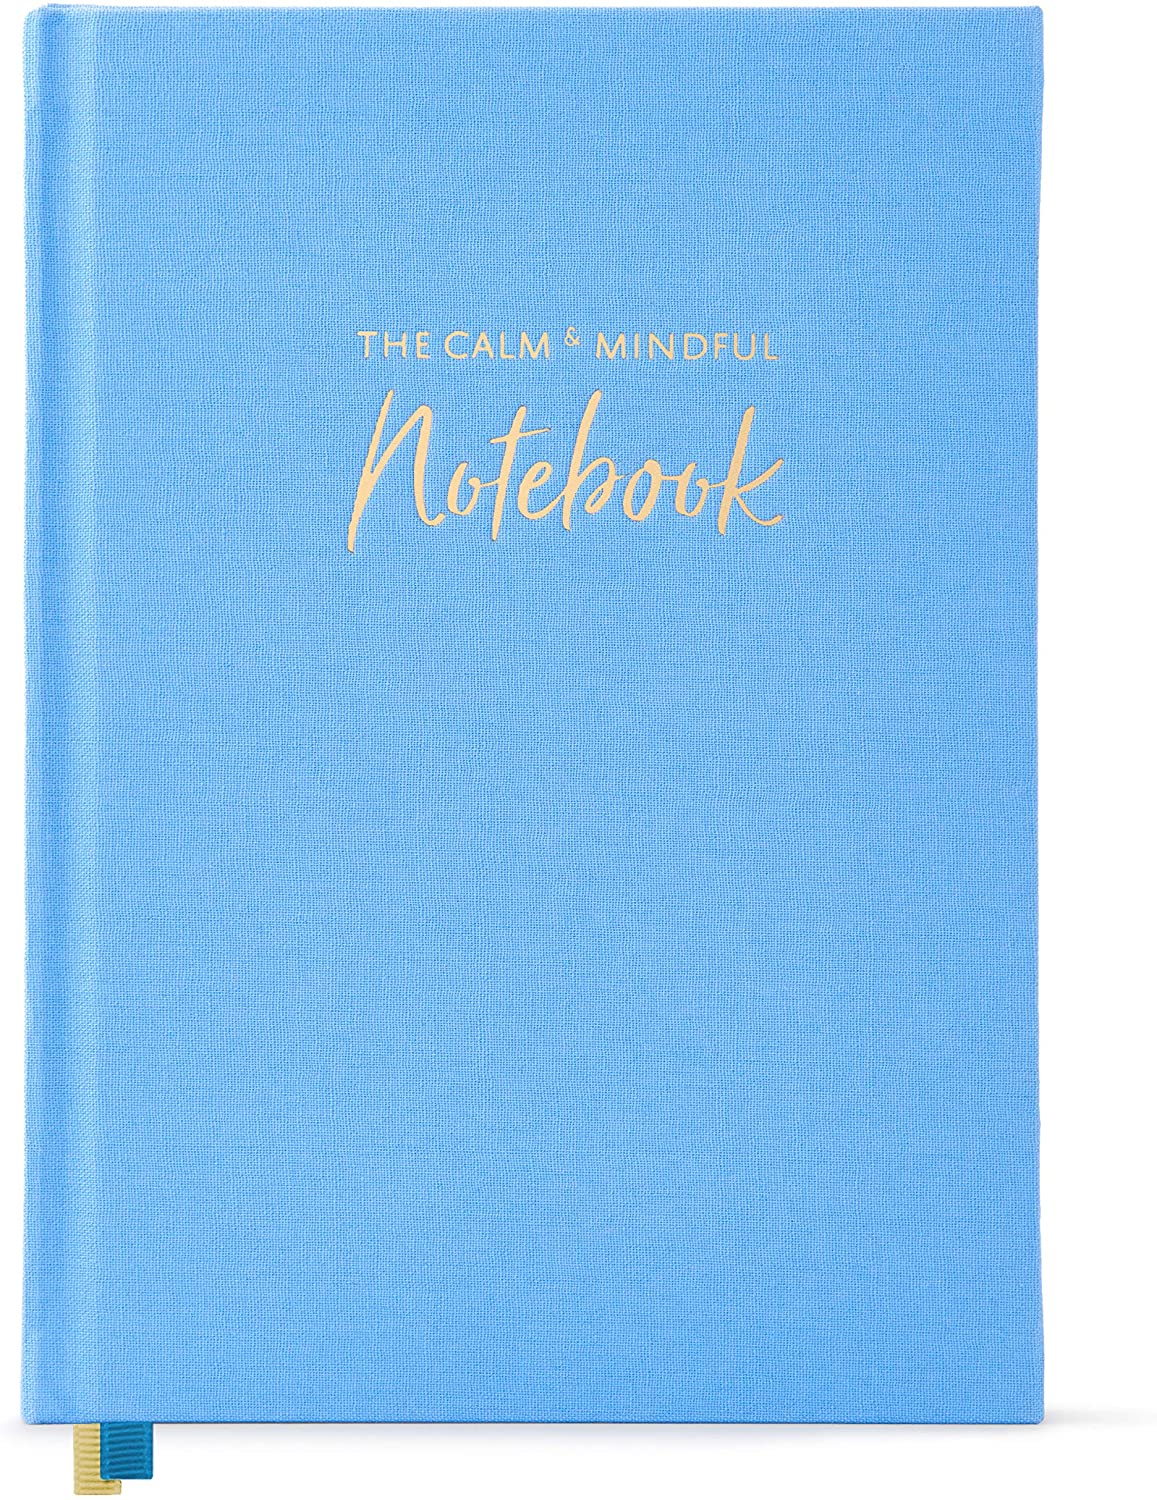 """The Calm & Mindful Notebook – Guided Mindfulness and Self Care Journal with Writing Prompts – 252 Hardbound Pages Promote Self Kindness, Meditation, Stress Relief and Gratitude (8.5"""" x 6"""")"""